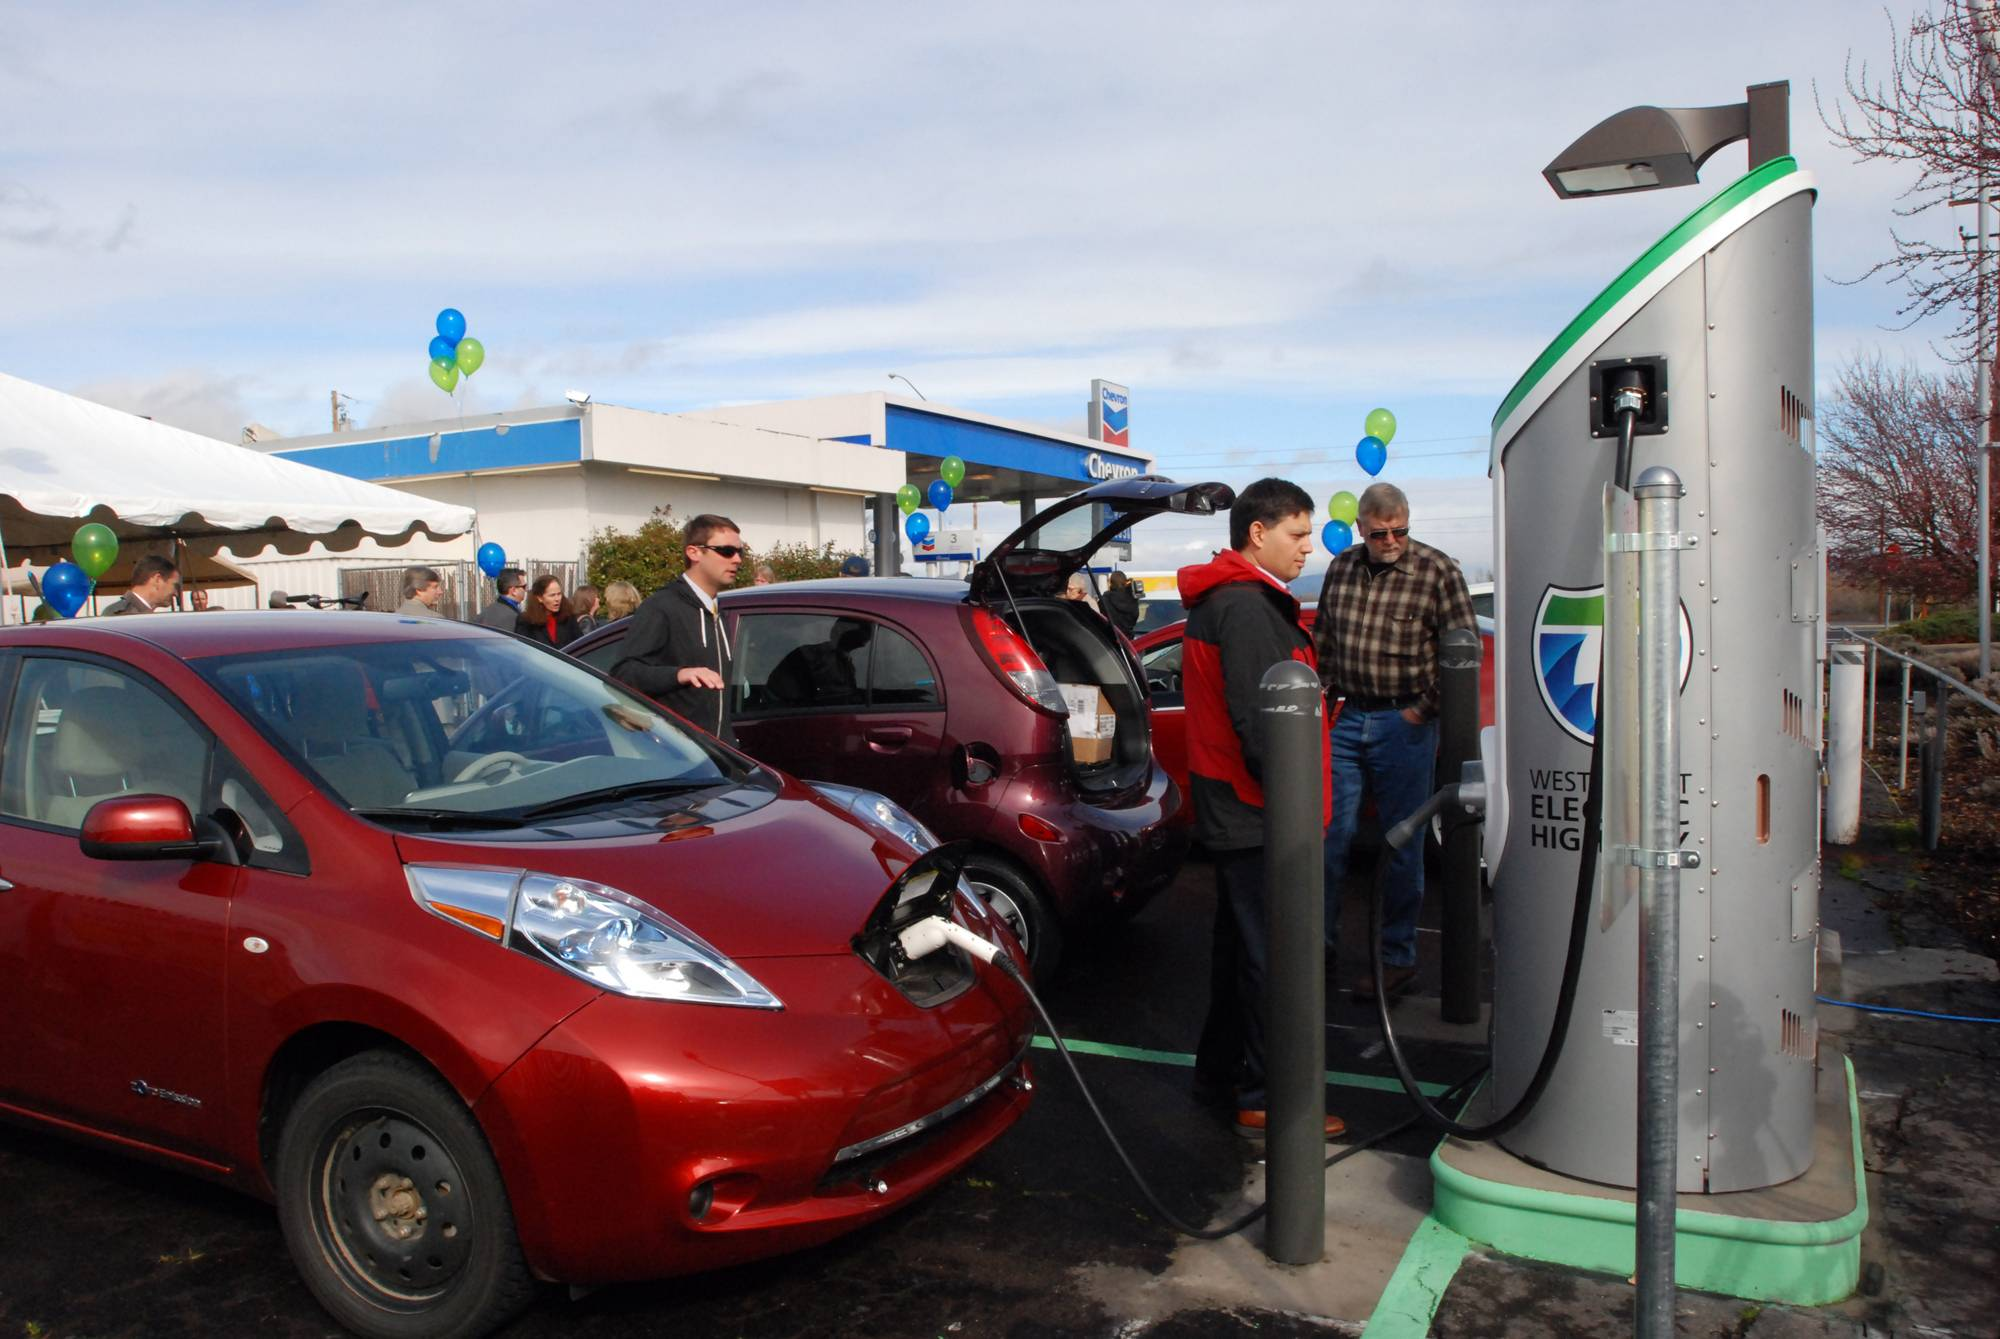 FILE - In this March 16, 2012 file photo, a Nissan Leaf tops off it's battery in Central Point, Ore., at one of the charging stations along Interstate 5. If you didn't take advantage of a wide array of tax credits and deductions last year, it looks like you'll be out of luck in 2014. Tax credits for certain electric cars though continue into 2014.